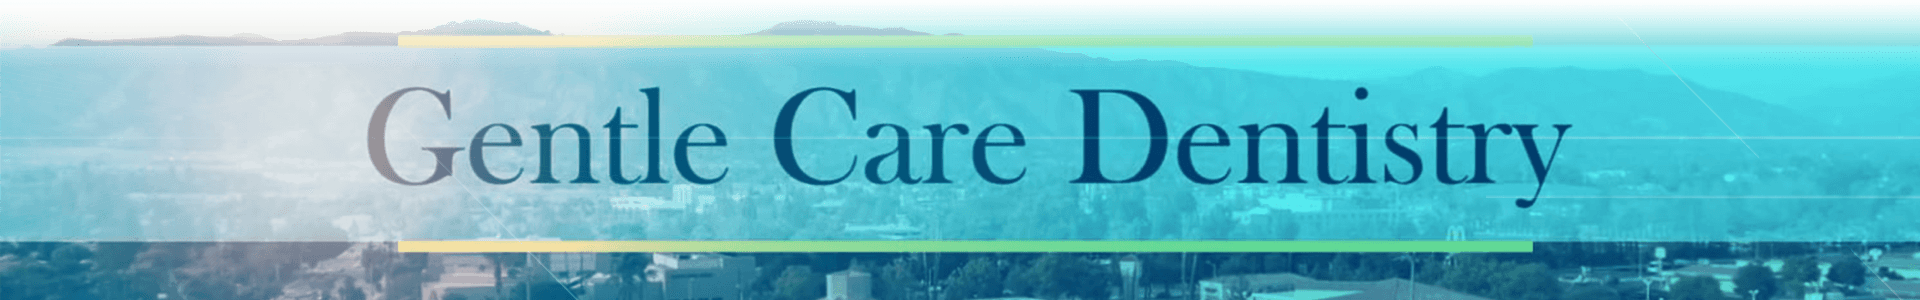 Gentle Care Dentistry banner